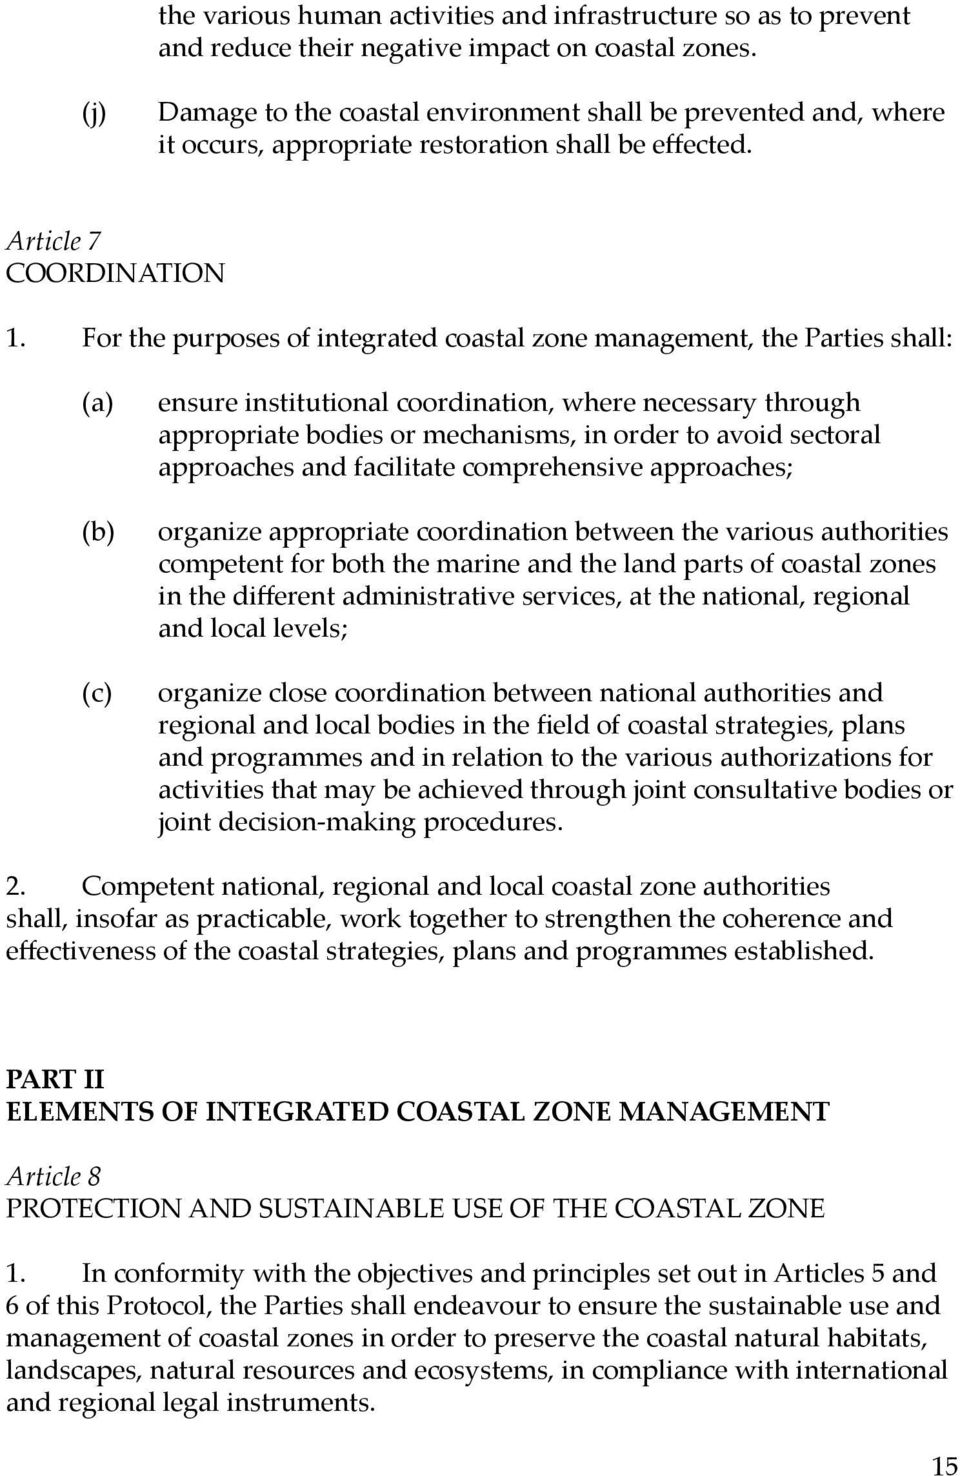 For the purposes of integrated coastal zone management, the Parties shall: (a) (b) (c) ensure institutional coordination, where necessary through appropriate bodies or mechanisms, in order to avoid